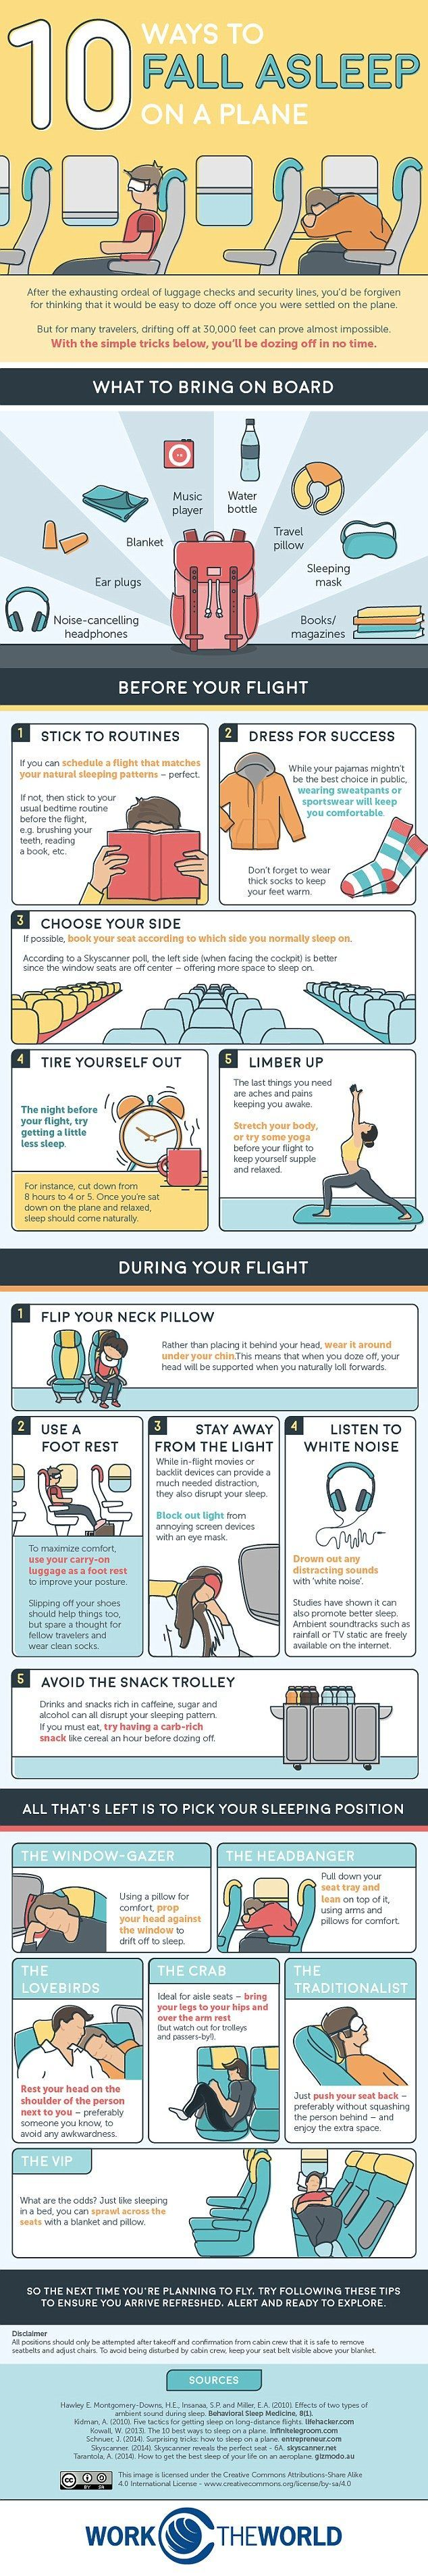 How to fall asleep on the plane: The ultimate guide | Daily Mail Online